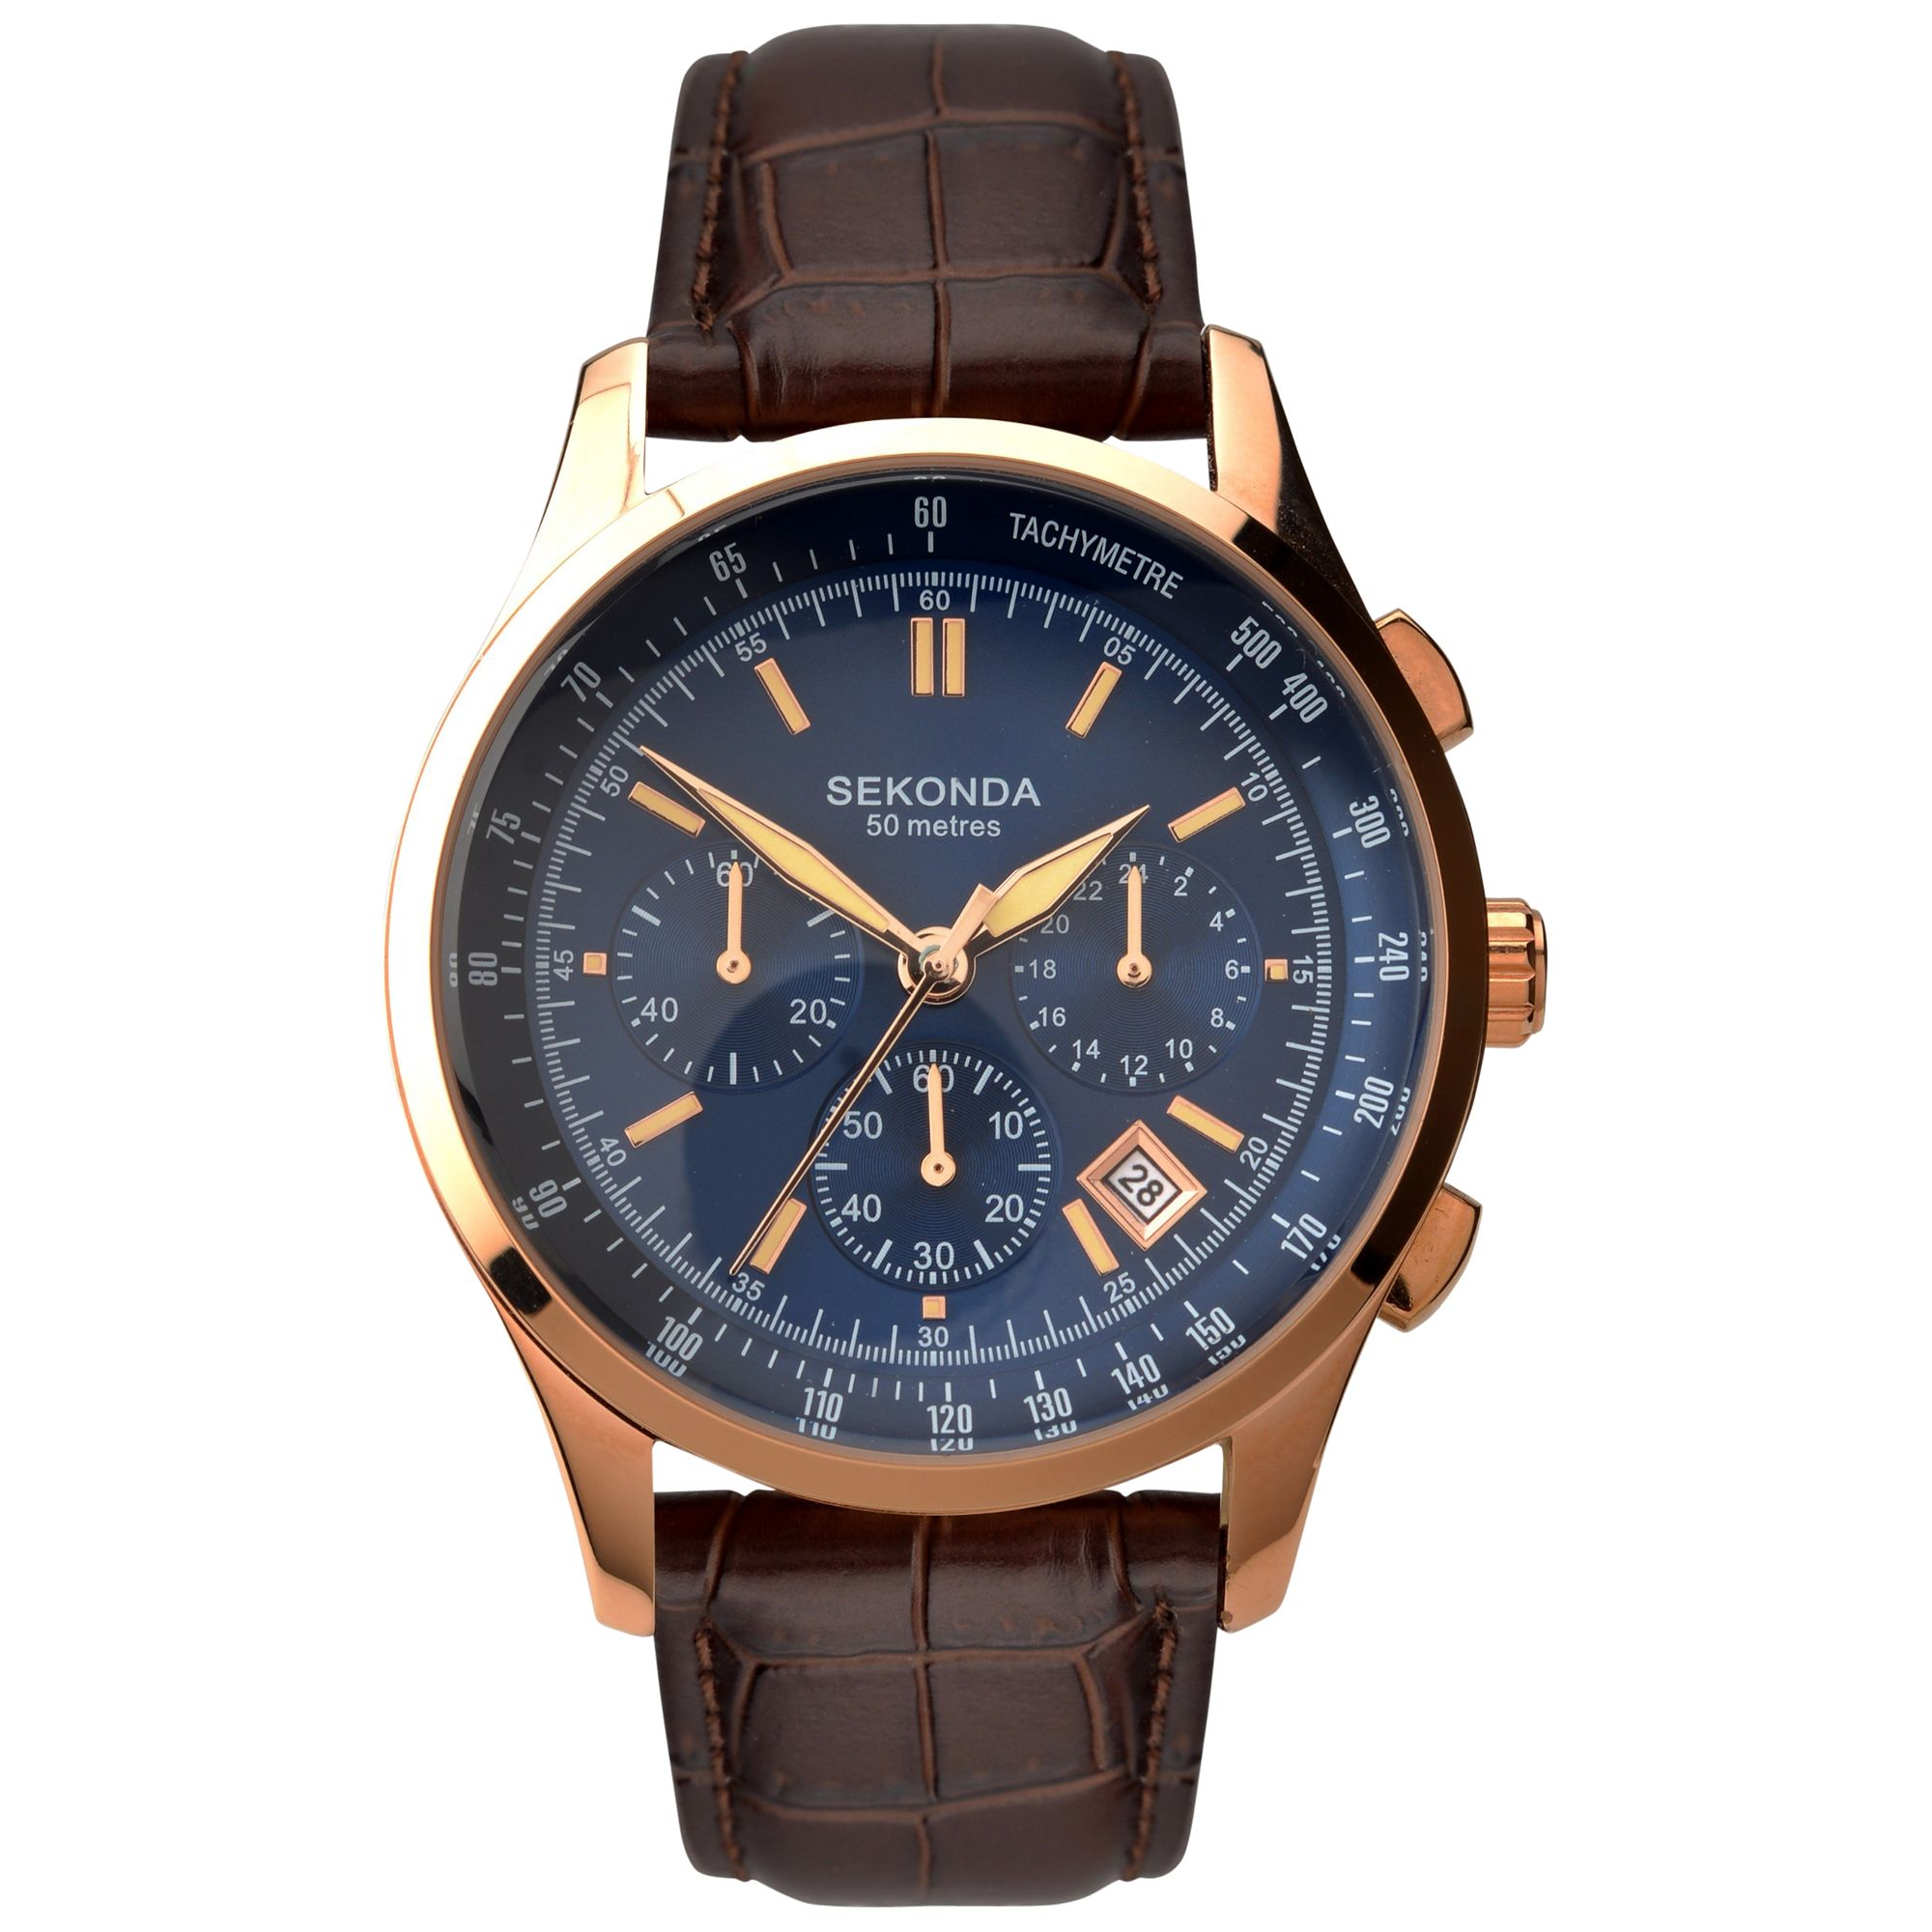 Sekonda Sekonda 1157.27 Men's Chronograph Leather Strap Watch, Brown/Blue